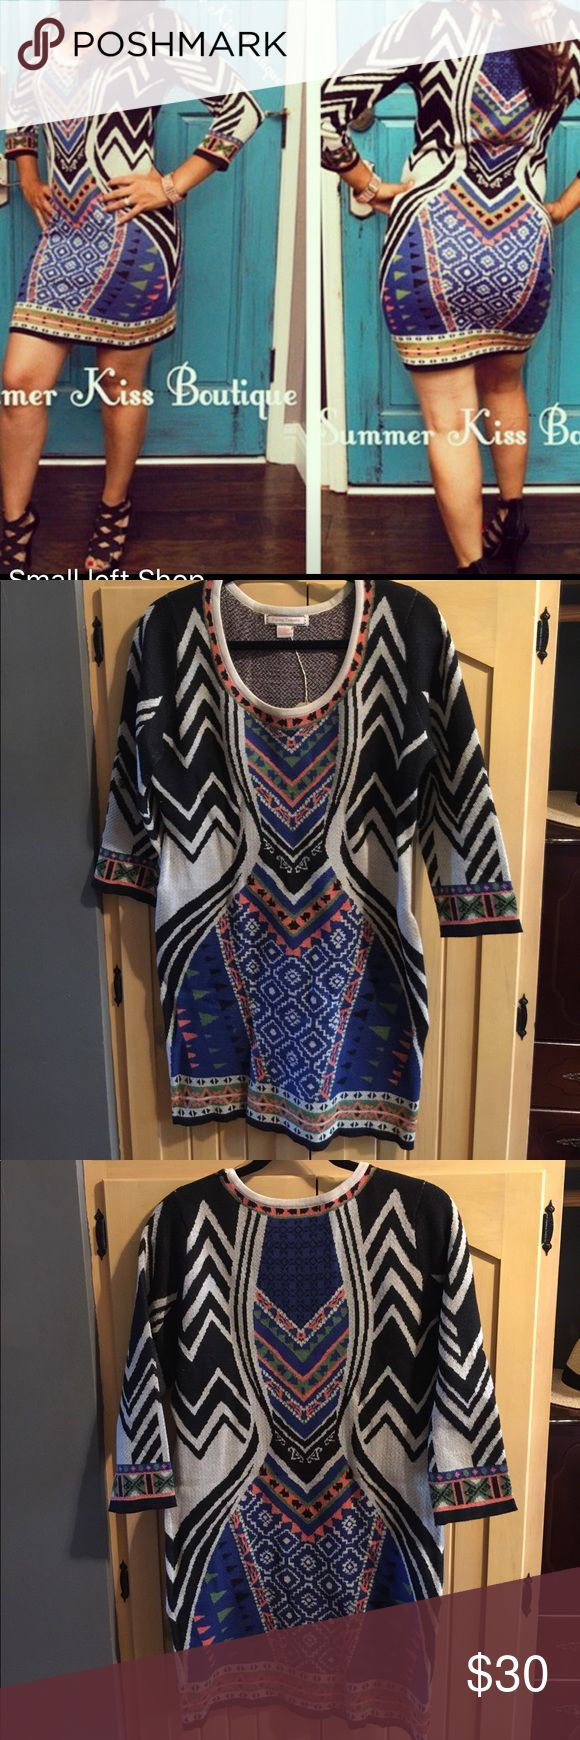 ⚜️Bandage Knit Sweater Multi Color Dress Bandage Knit Sweater Multi Color Dress. NWT from my previously owned SummerKiss Boutique. Fits true to size. Model wearing original dress. Scoop neck and 3/4 sleeve. Would fit a size 6-8 woman's dress. Flying Tomato Dresses Midi